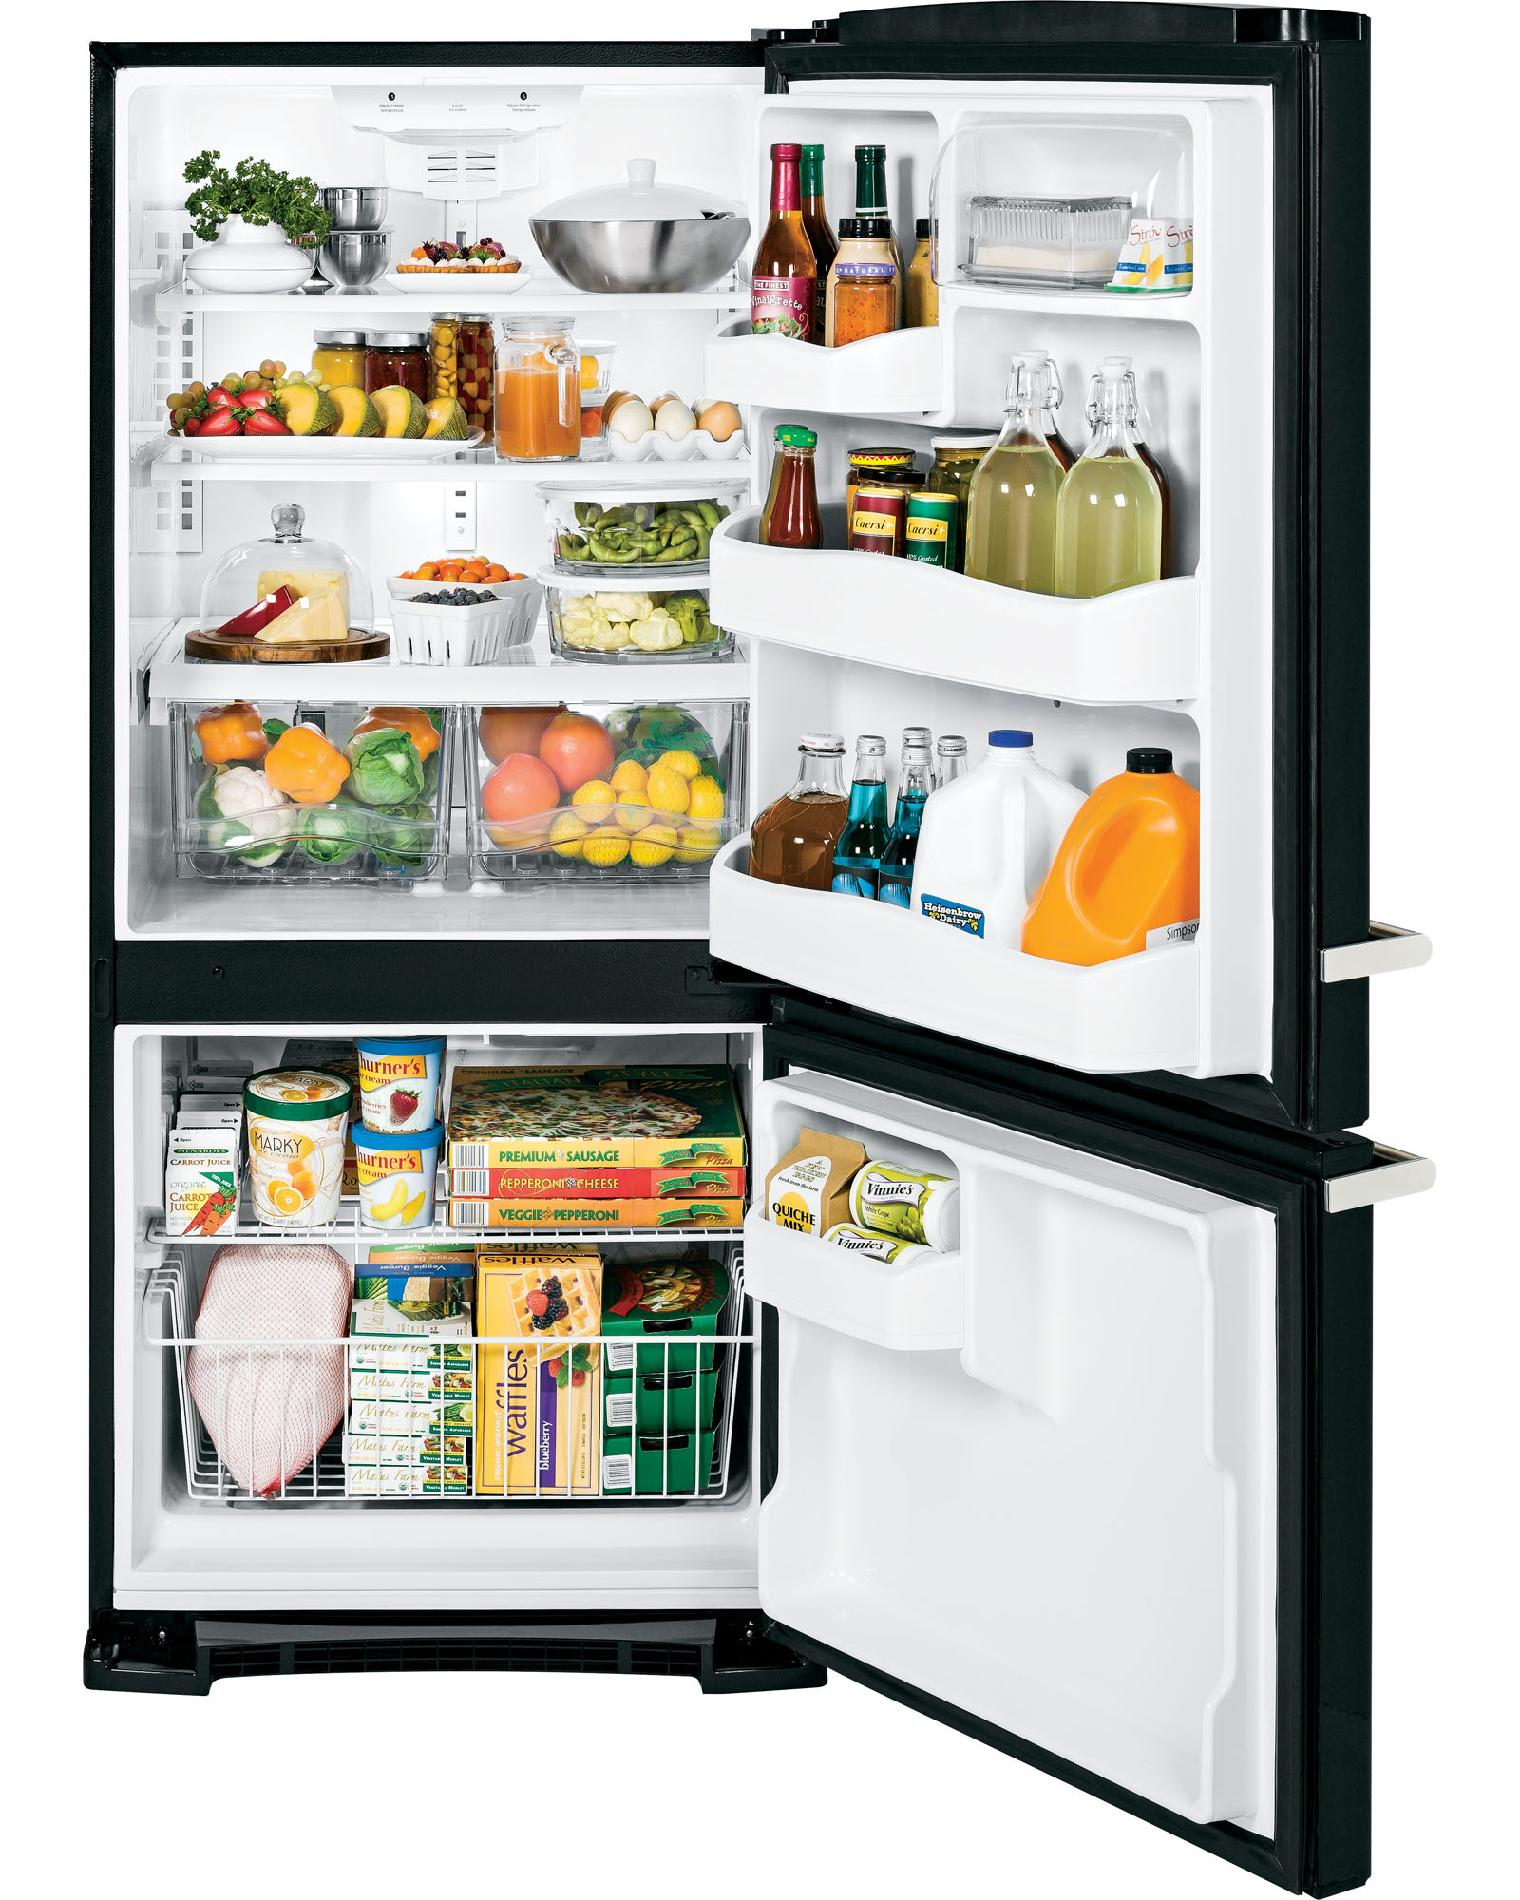 GE Appliances Artistry™ Series 20.3 cu. ft. Bottom-Freezer Refrigerator - Black